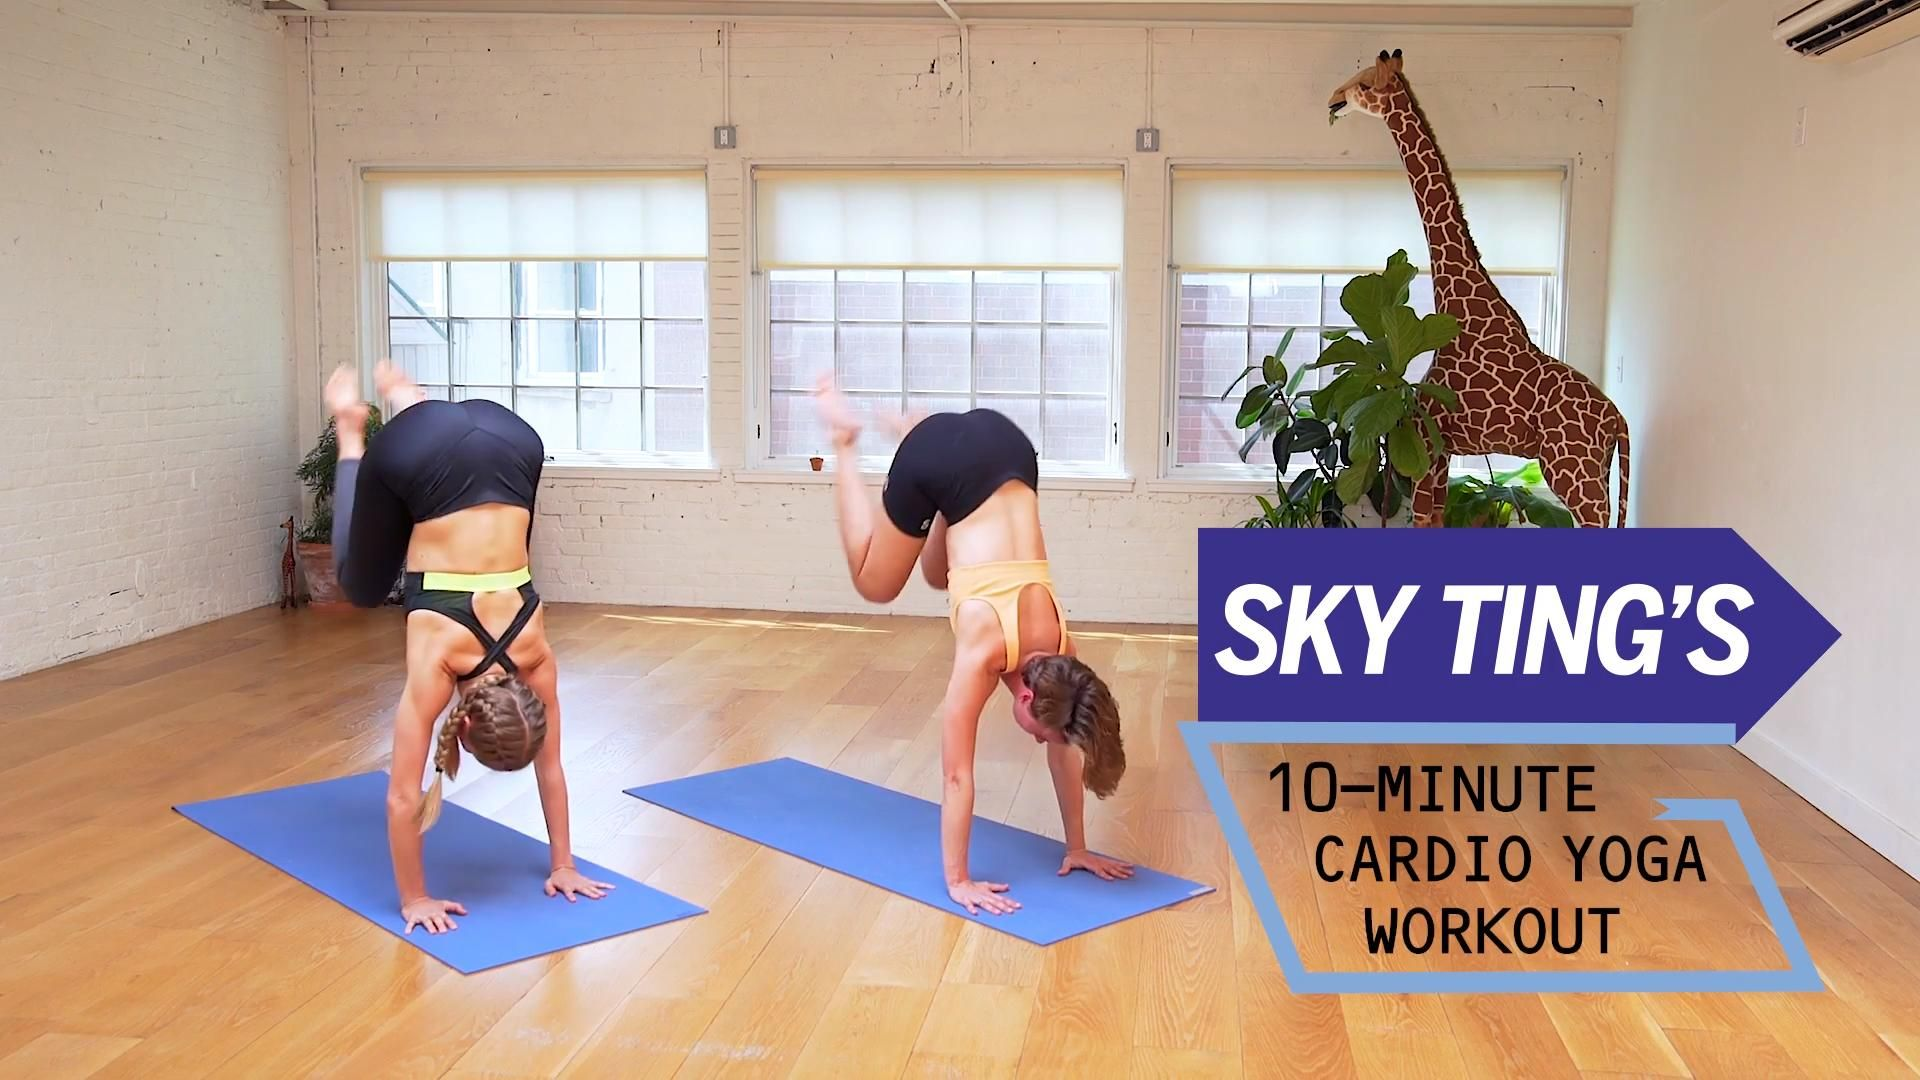 Sky Ting's Cardio Yoga Workout Will Give You The Stretch You Crave With the Sweat You Need #cardioyoga